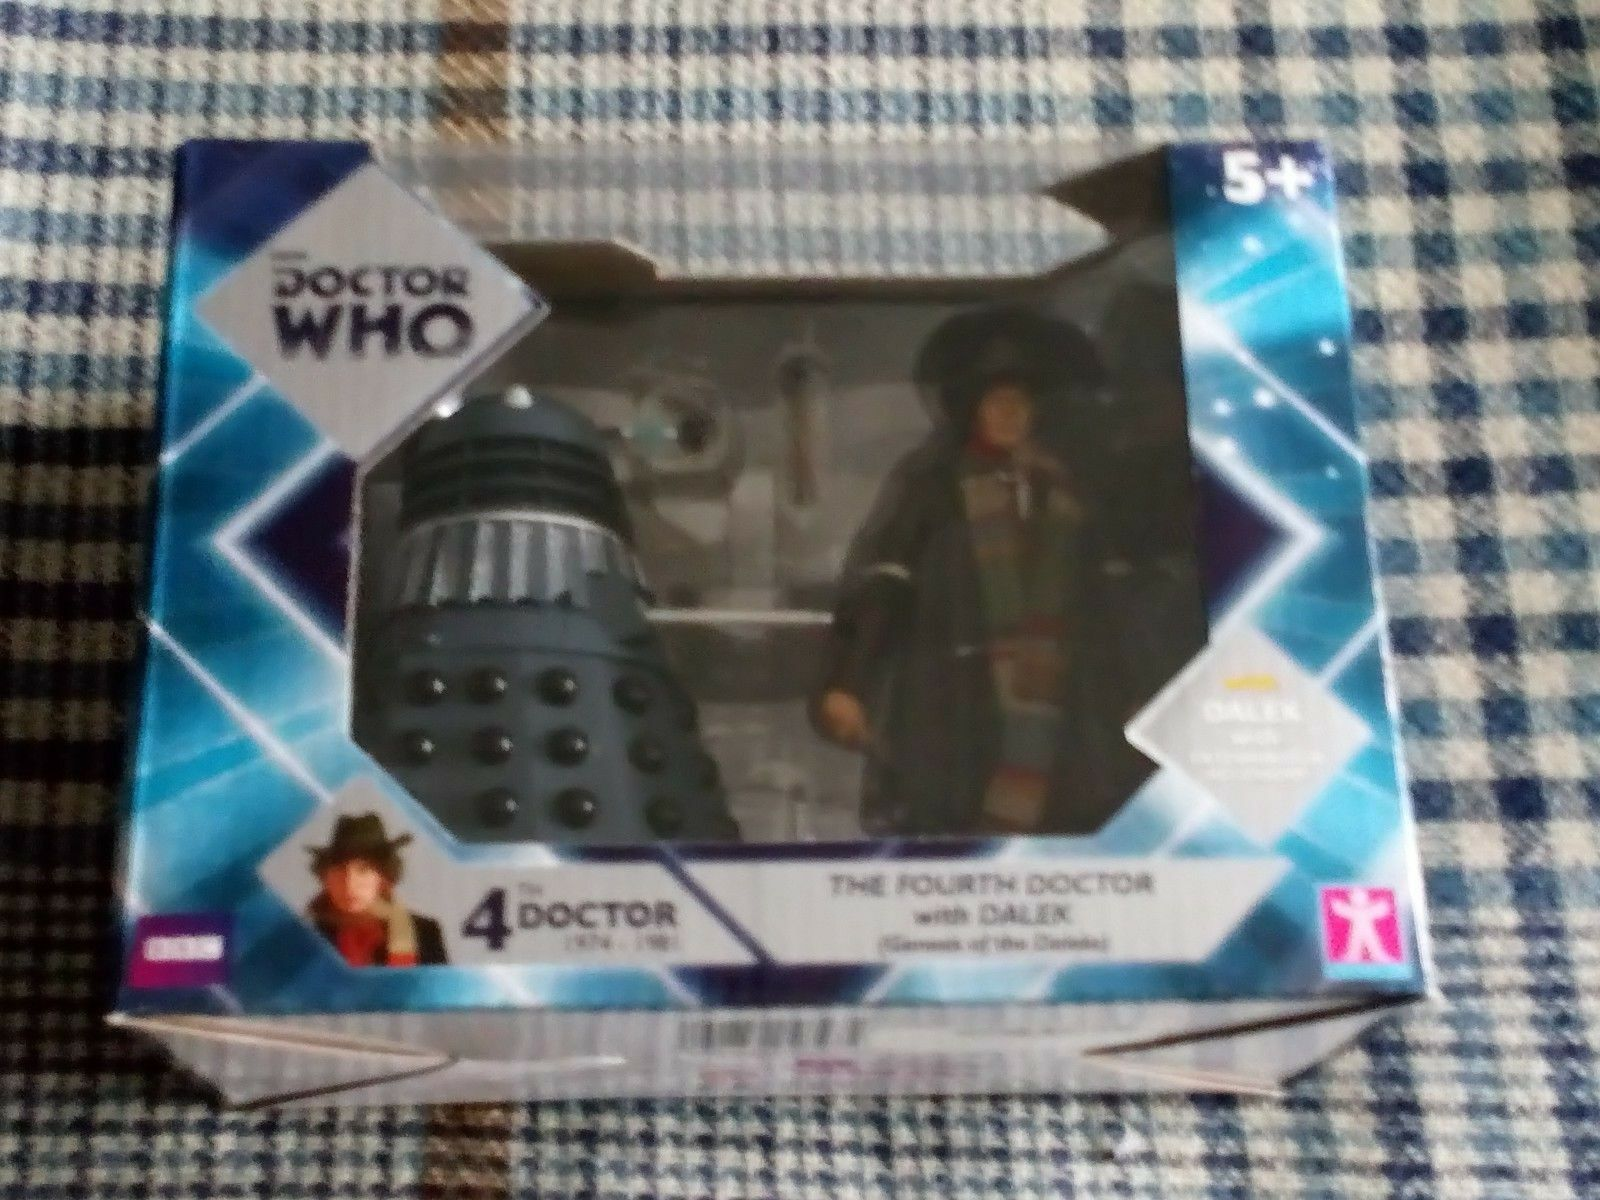 Doctor Who 4th Doctor with Dalek from Genesis of the Daleks  New Sealed